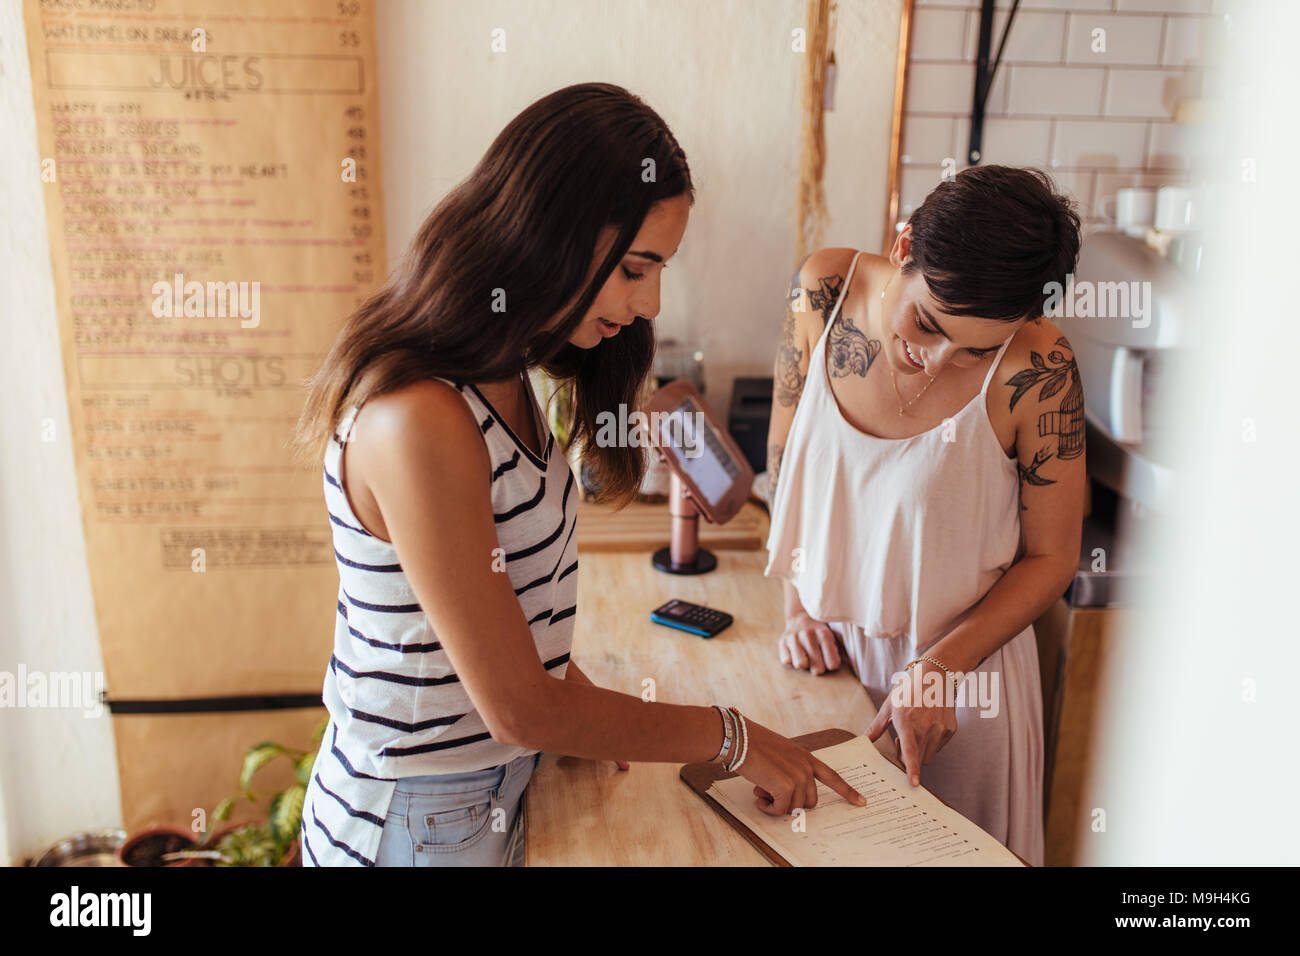 Restaurant owner helping a customer with the menu. Customer ordering food looking at the menu at the billing counter. - Stock Image